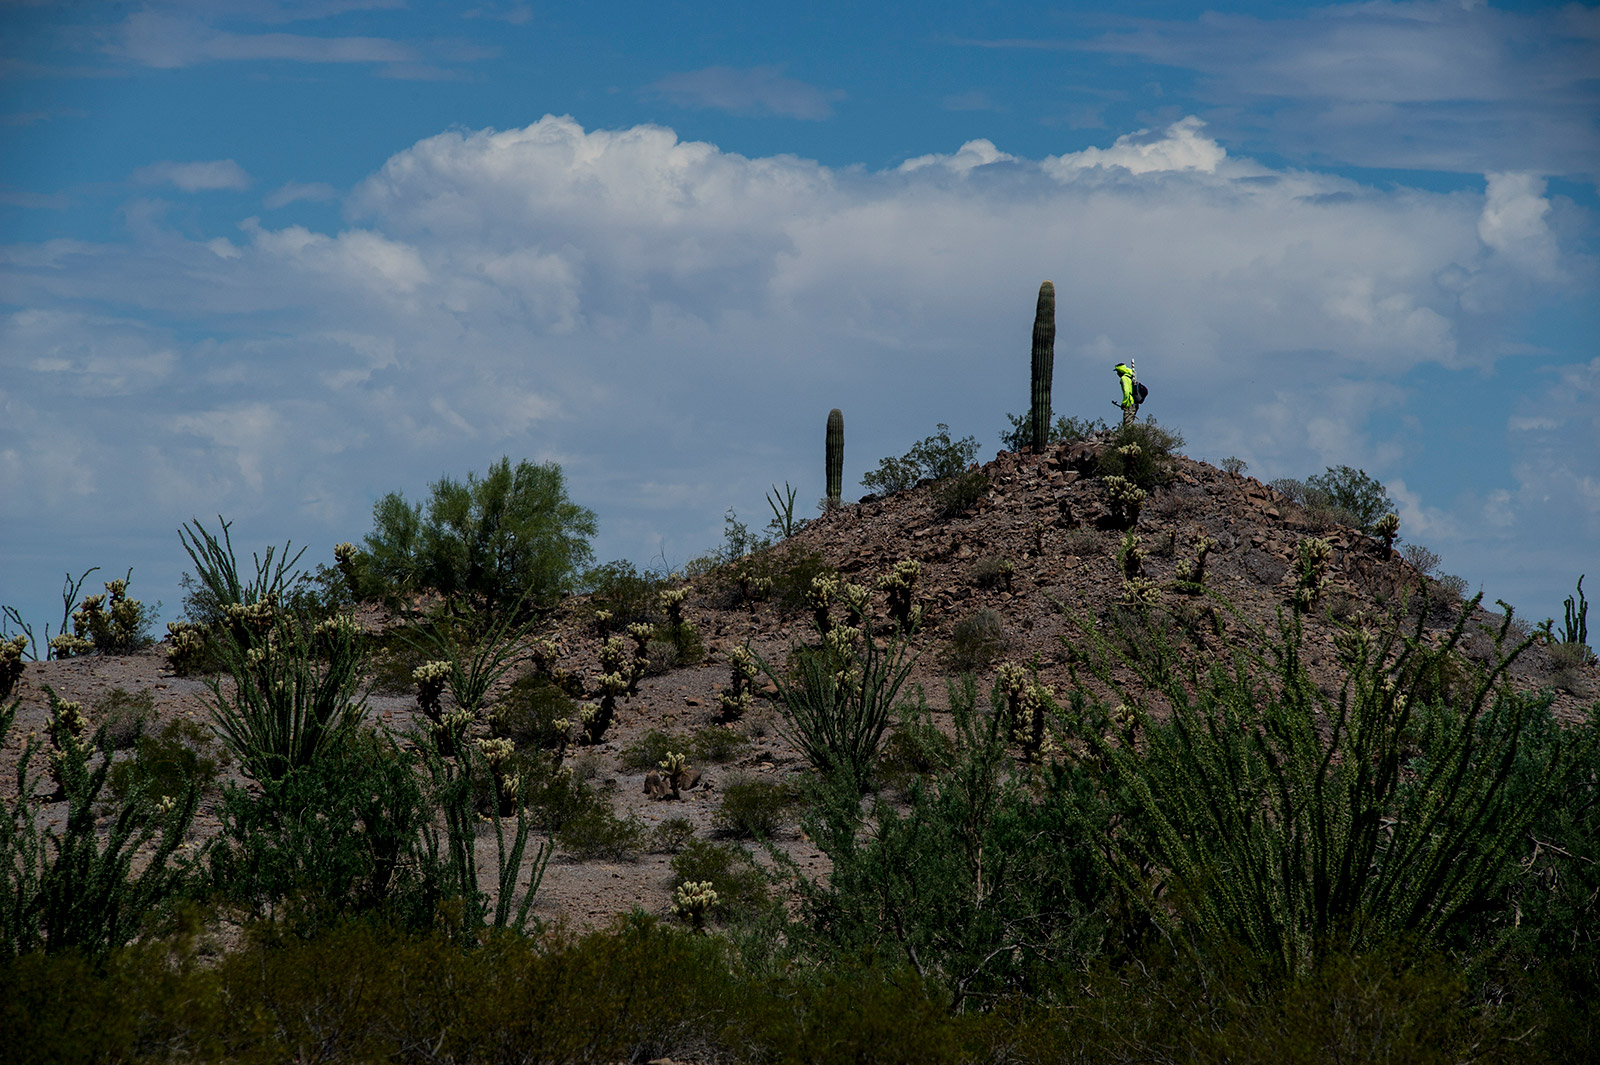 One of nearly two dozen volunteers with Aguilas Del Desierto uses a small hill to scan the Arizona desert for missing migrants near the U.S.-Mexico border on Aug. 26, 2017. The group uses radios to communicate and wear neon yellow shirts as they span out across the desert. <em>(Brandon Quester/inewsource)</em>